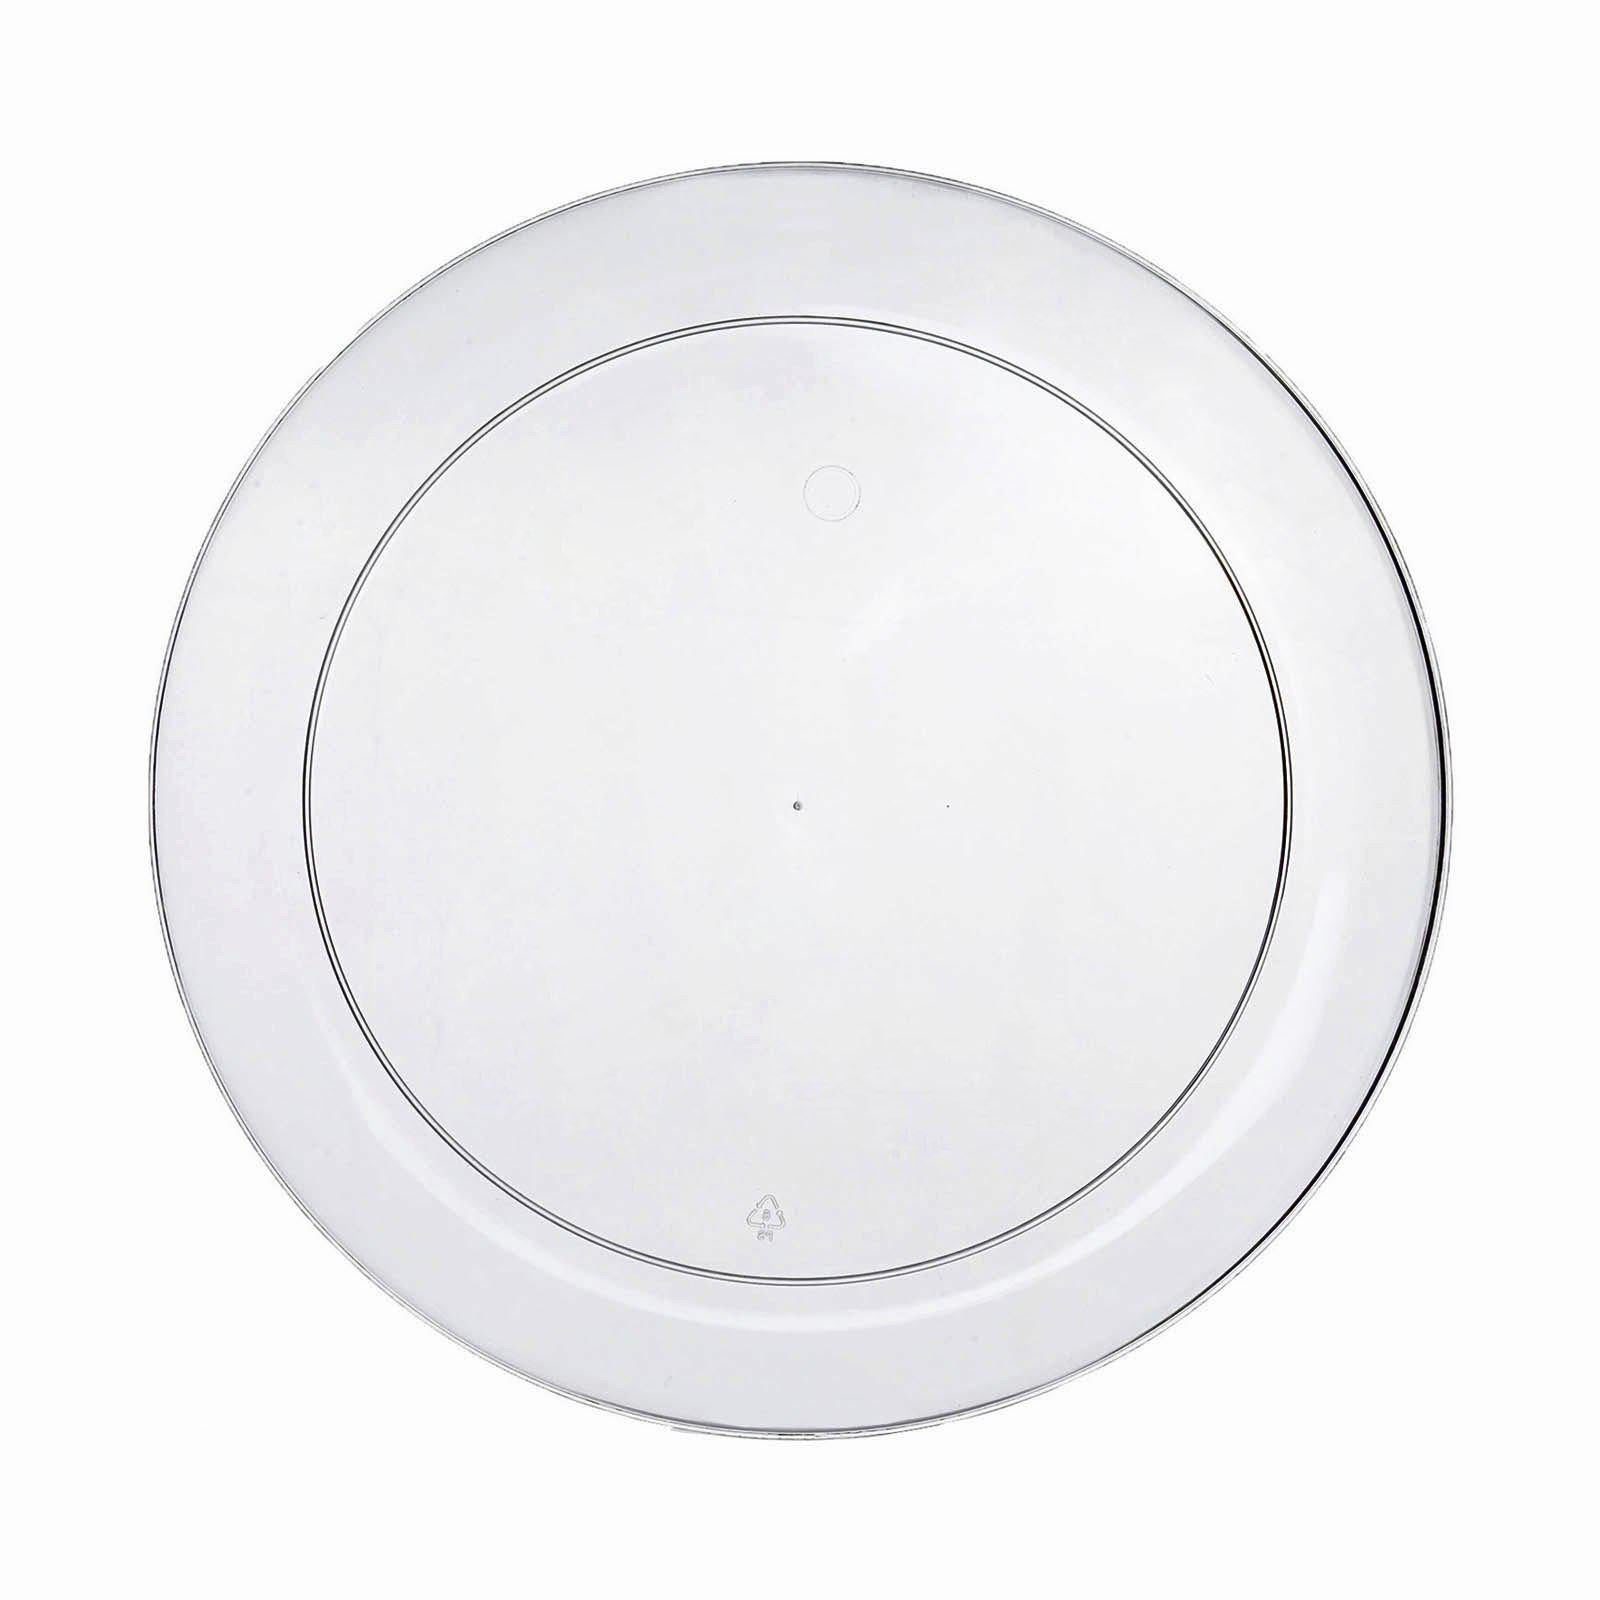 ... 40 Pack - Clear 7.5  Round Disposable Plate - Crystal Collection ...  sc 1 st  Tablecloths Factory & 40 Pack 8